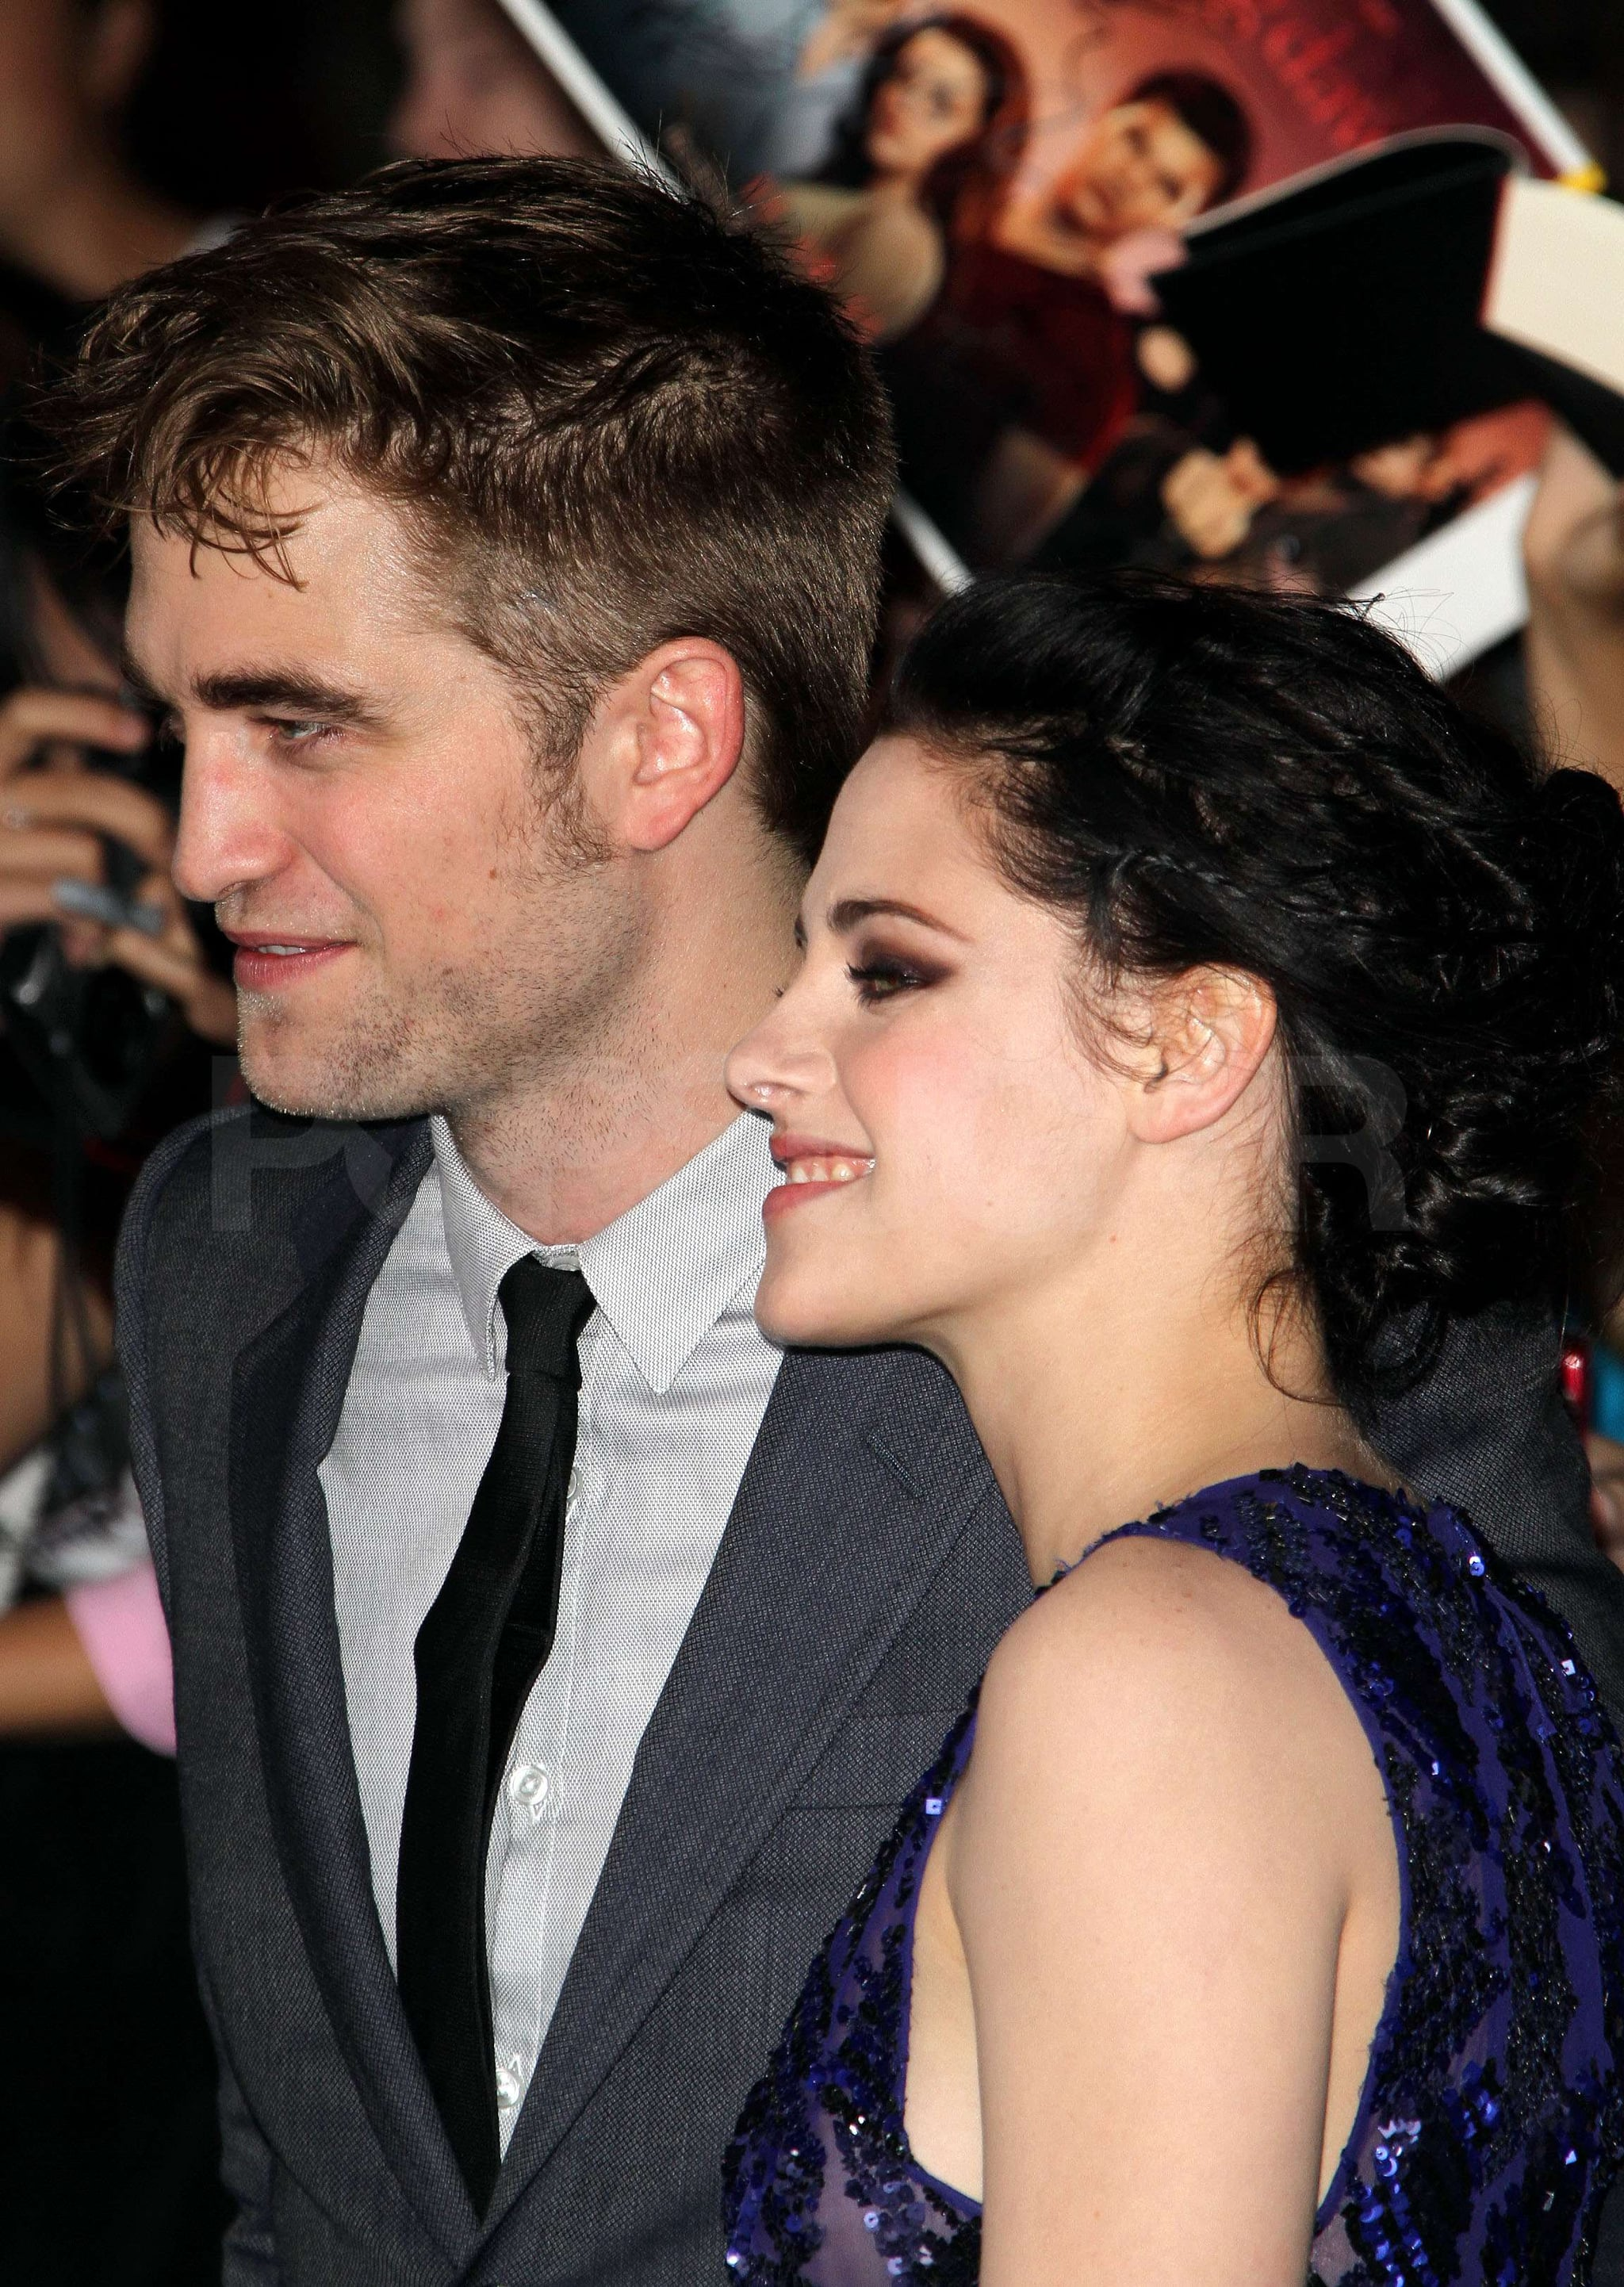 Kristen Stewart and Robert Pattinson greeted some fans as a pair.